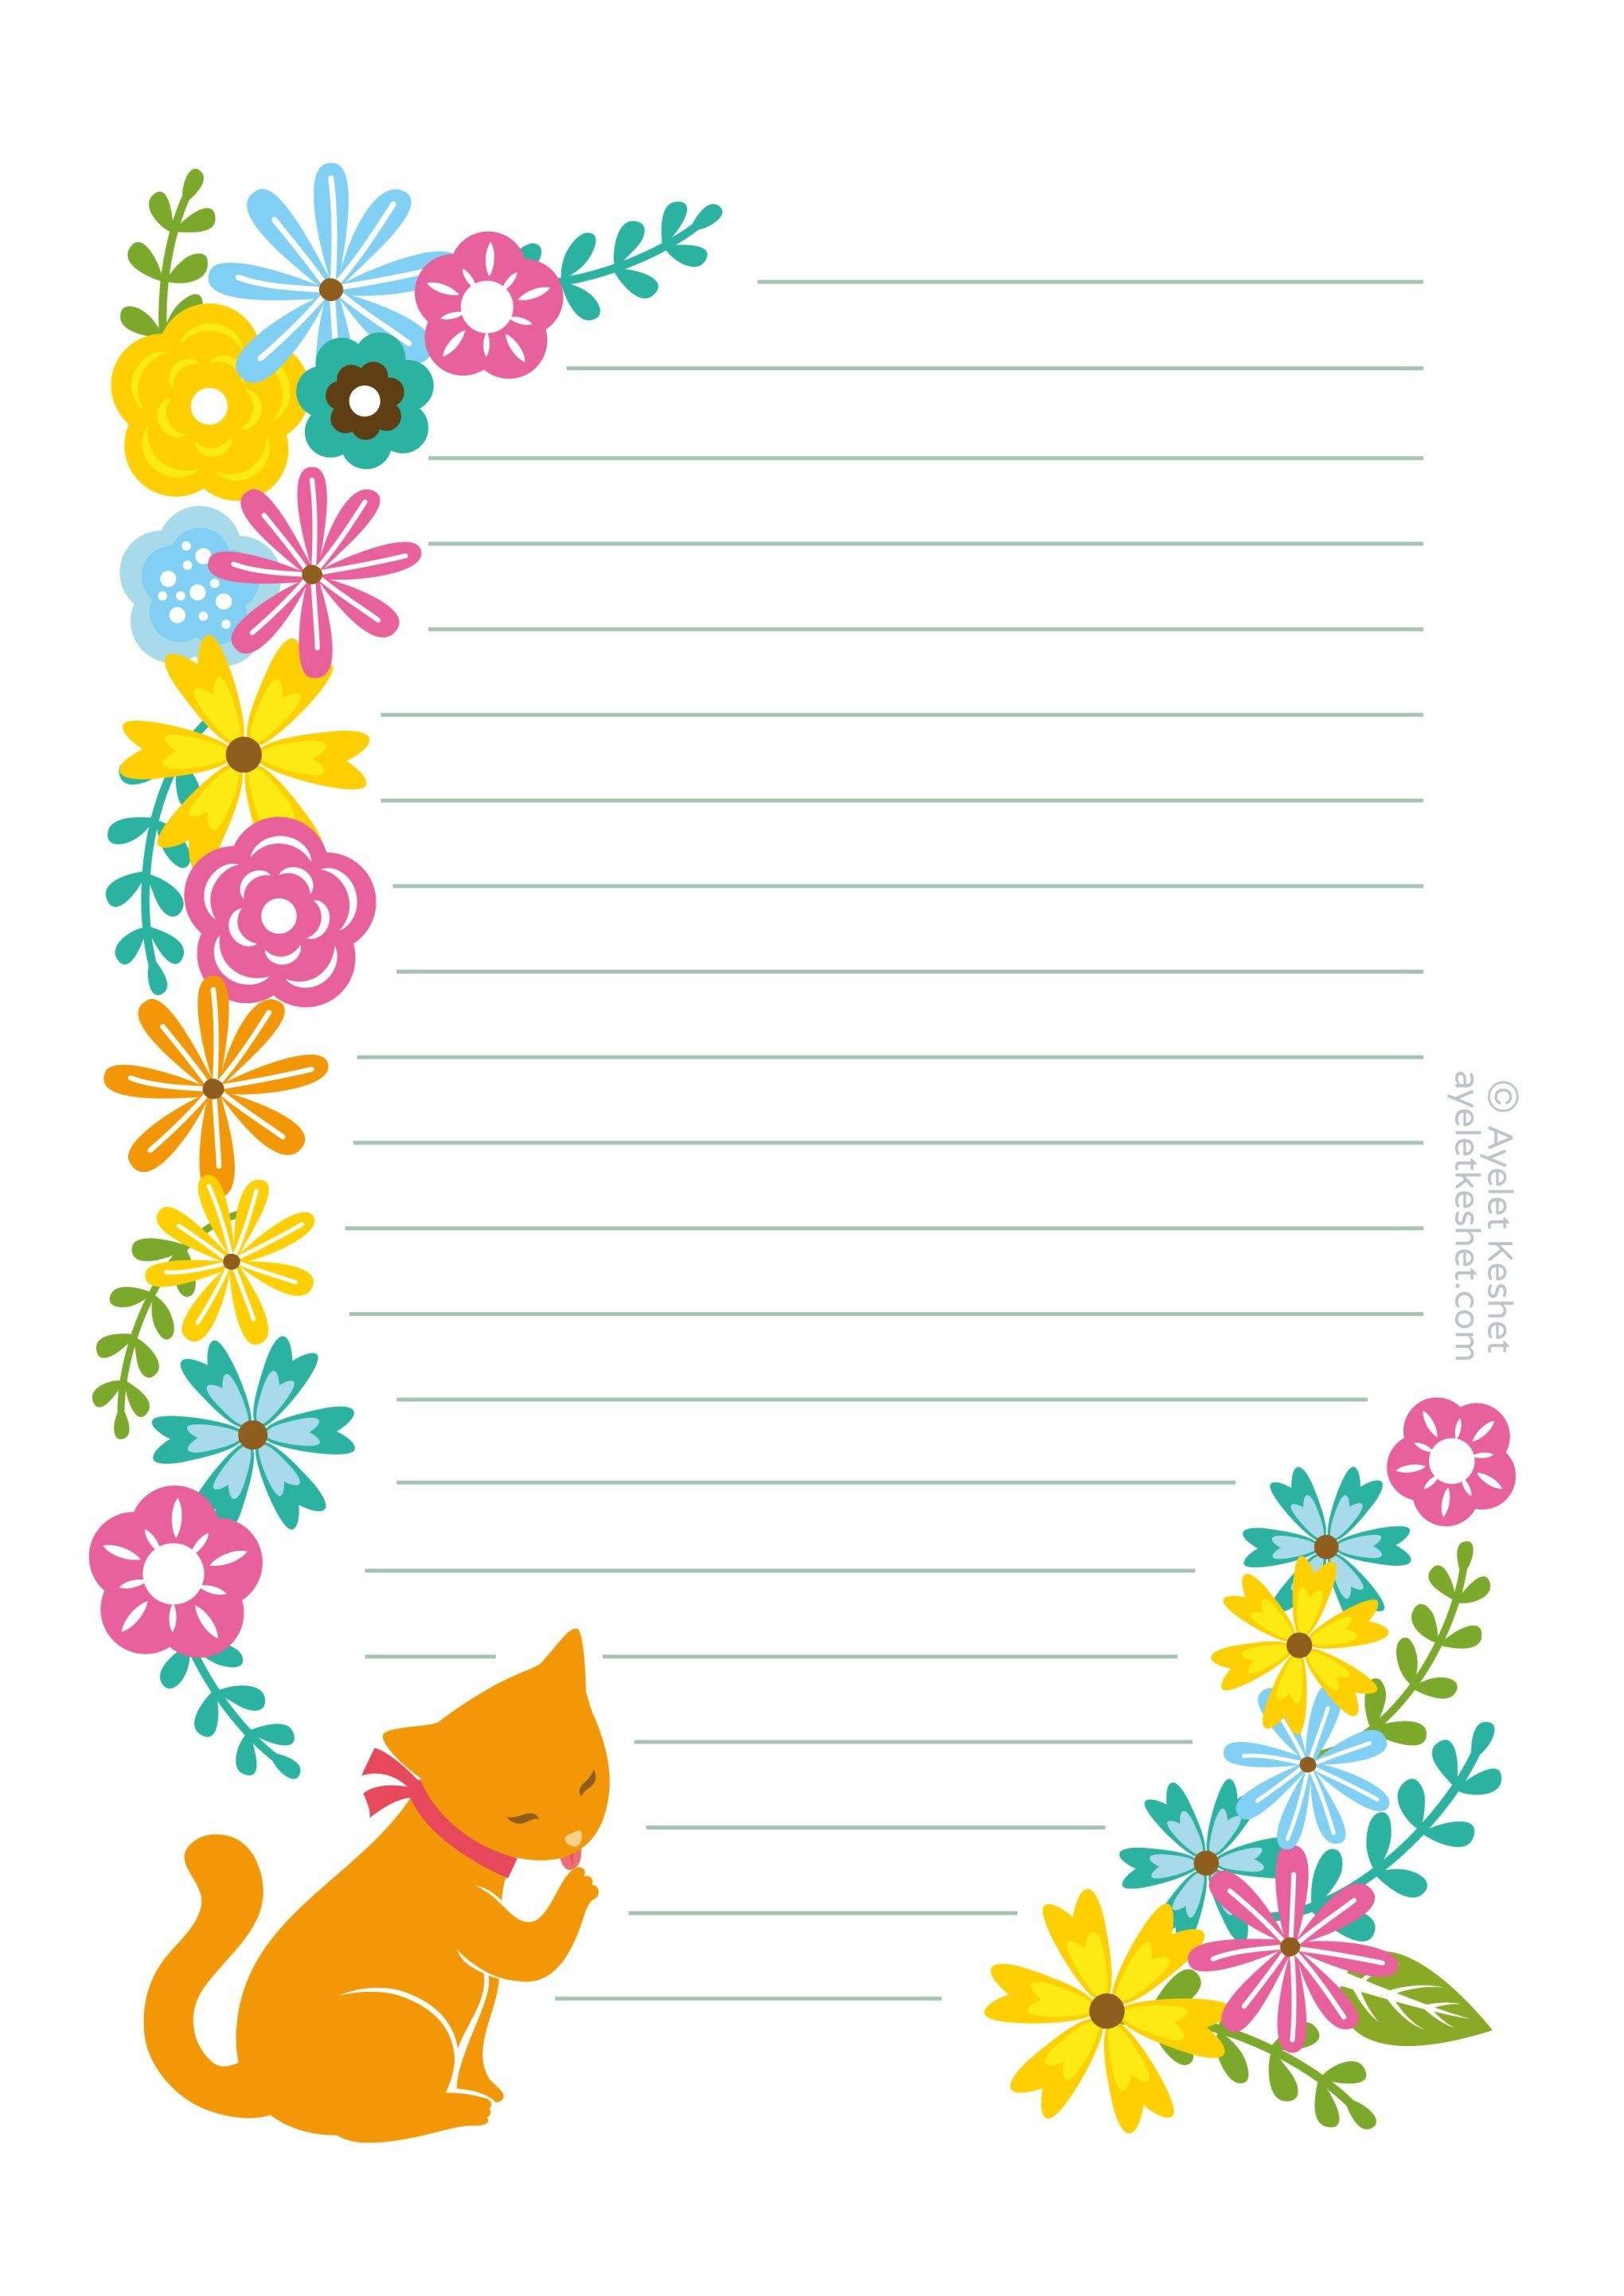 Free Printable Letter Paper   Printables To Go   Free Printable - Free Printable Stationery Paper